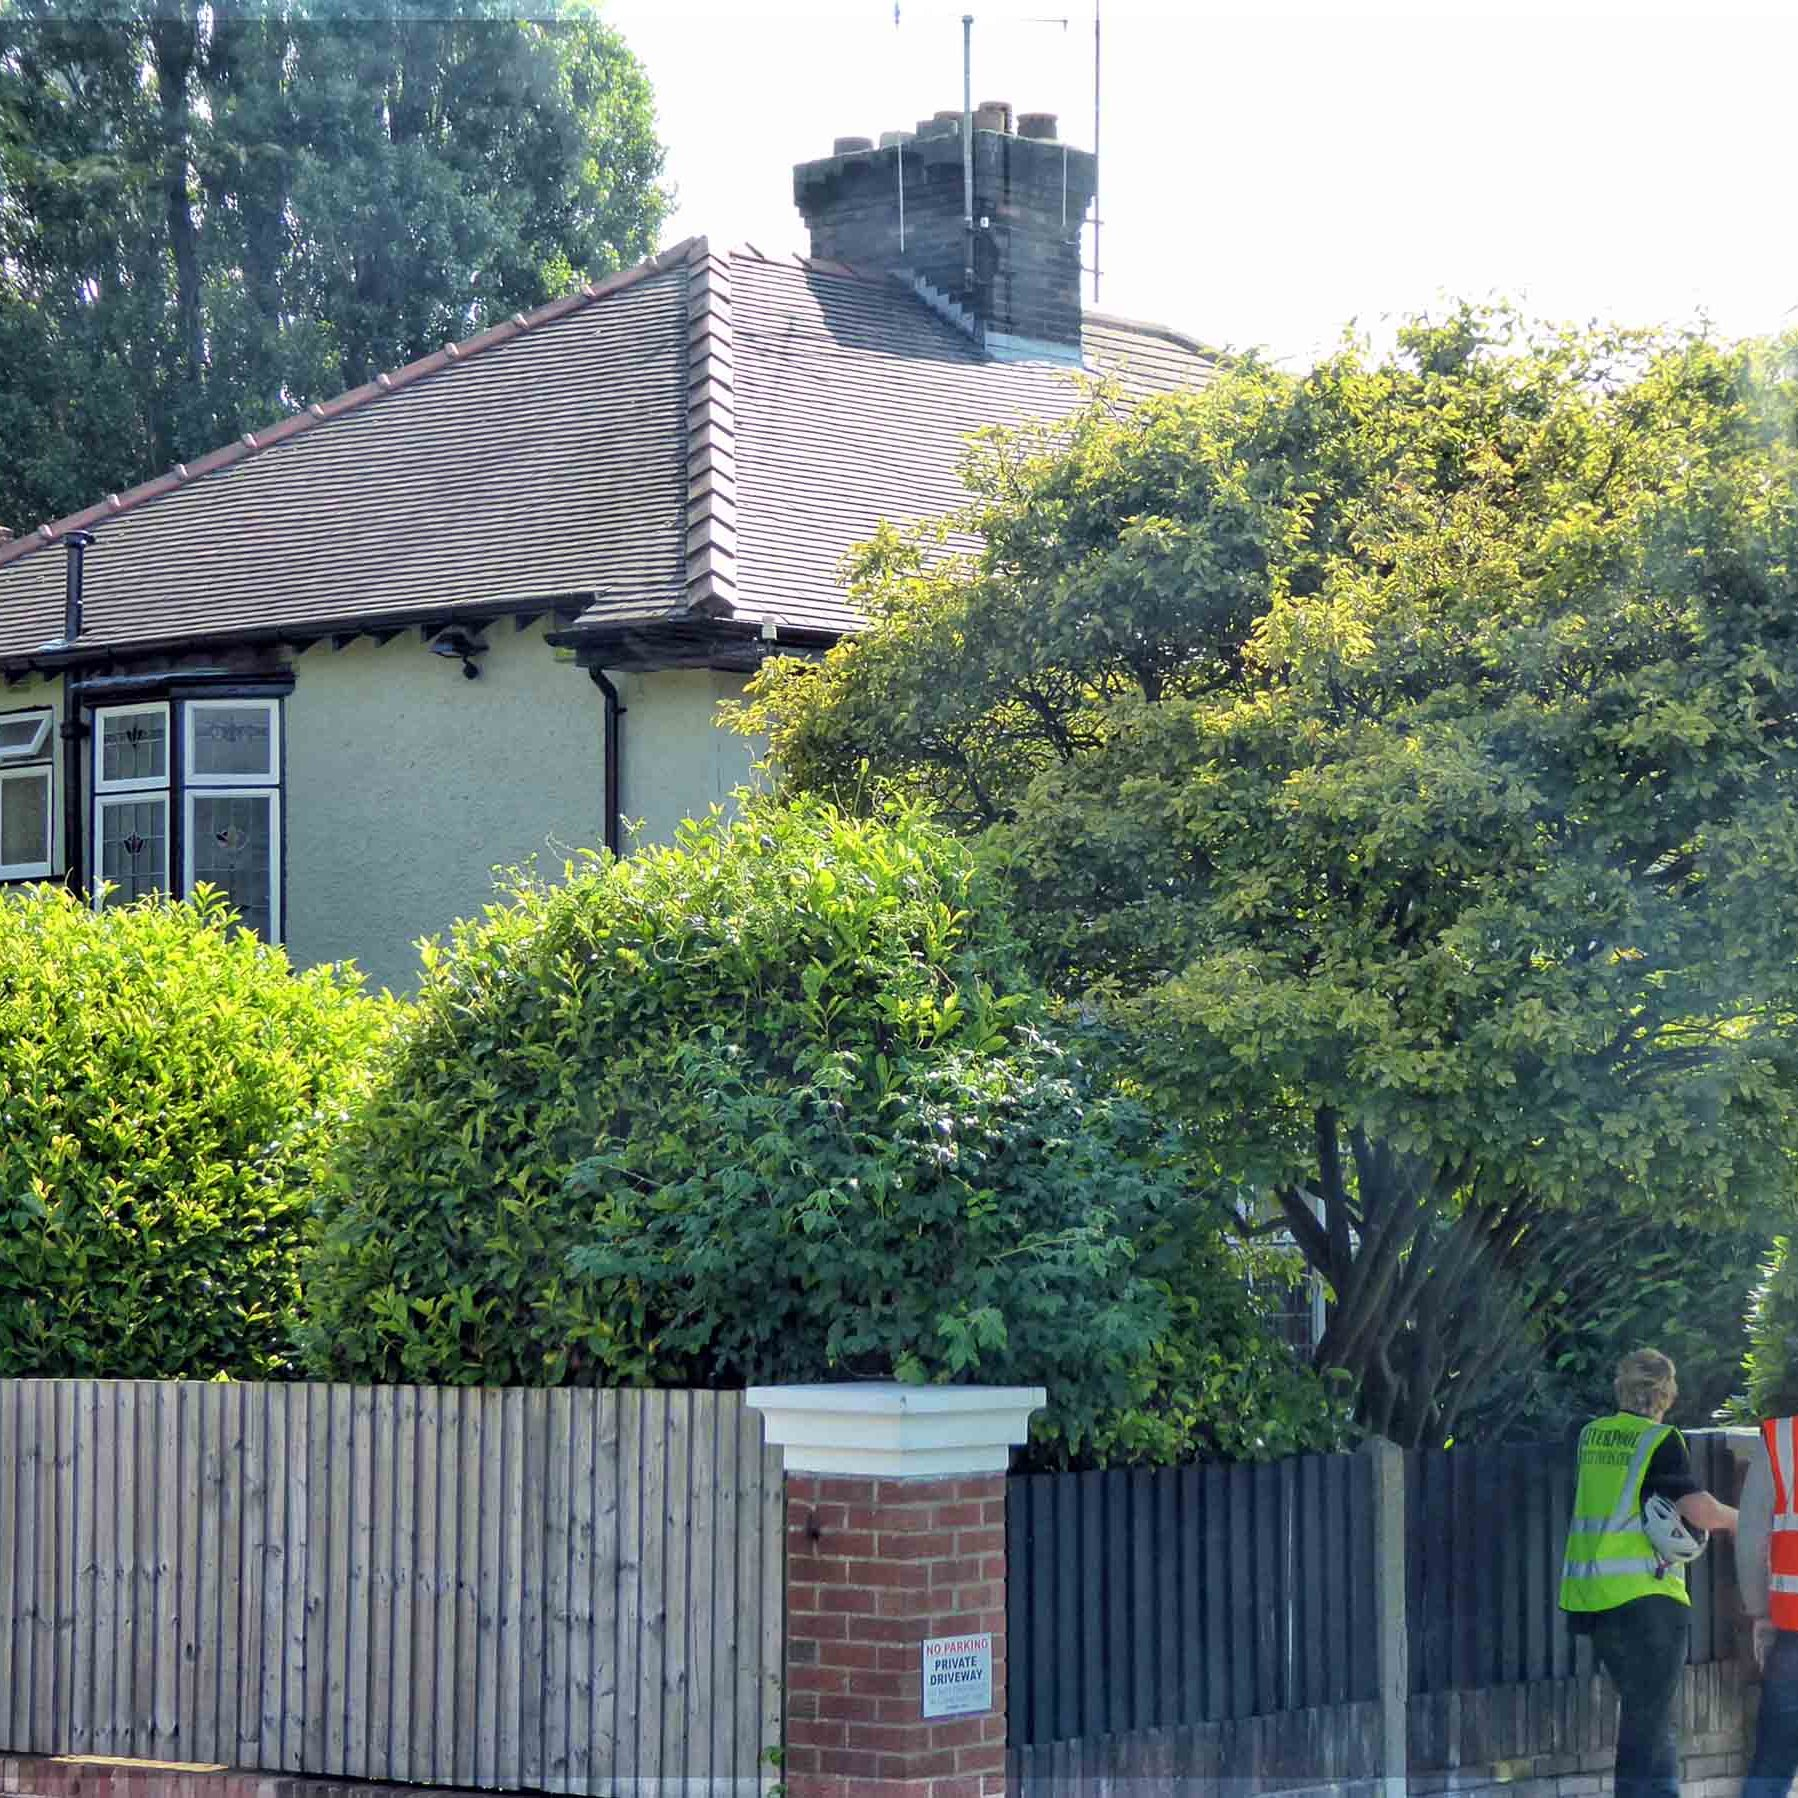 Suburban house with trees and tall hedge